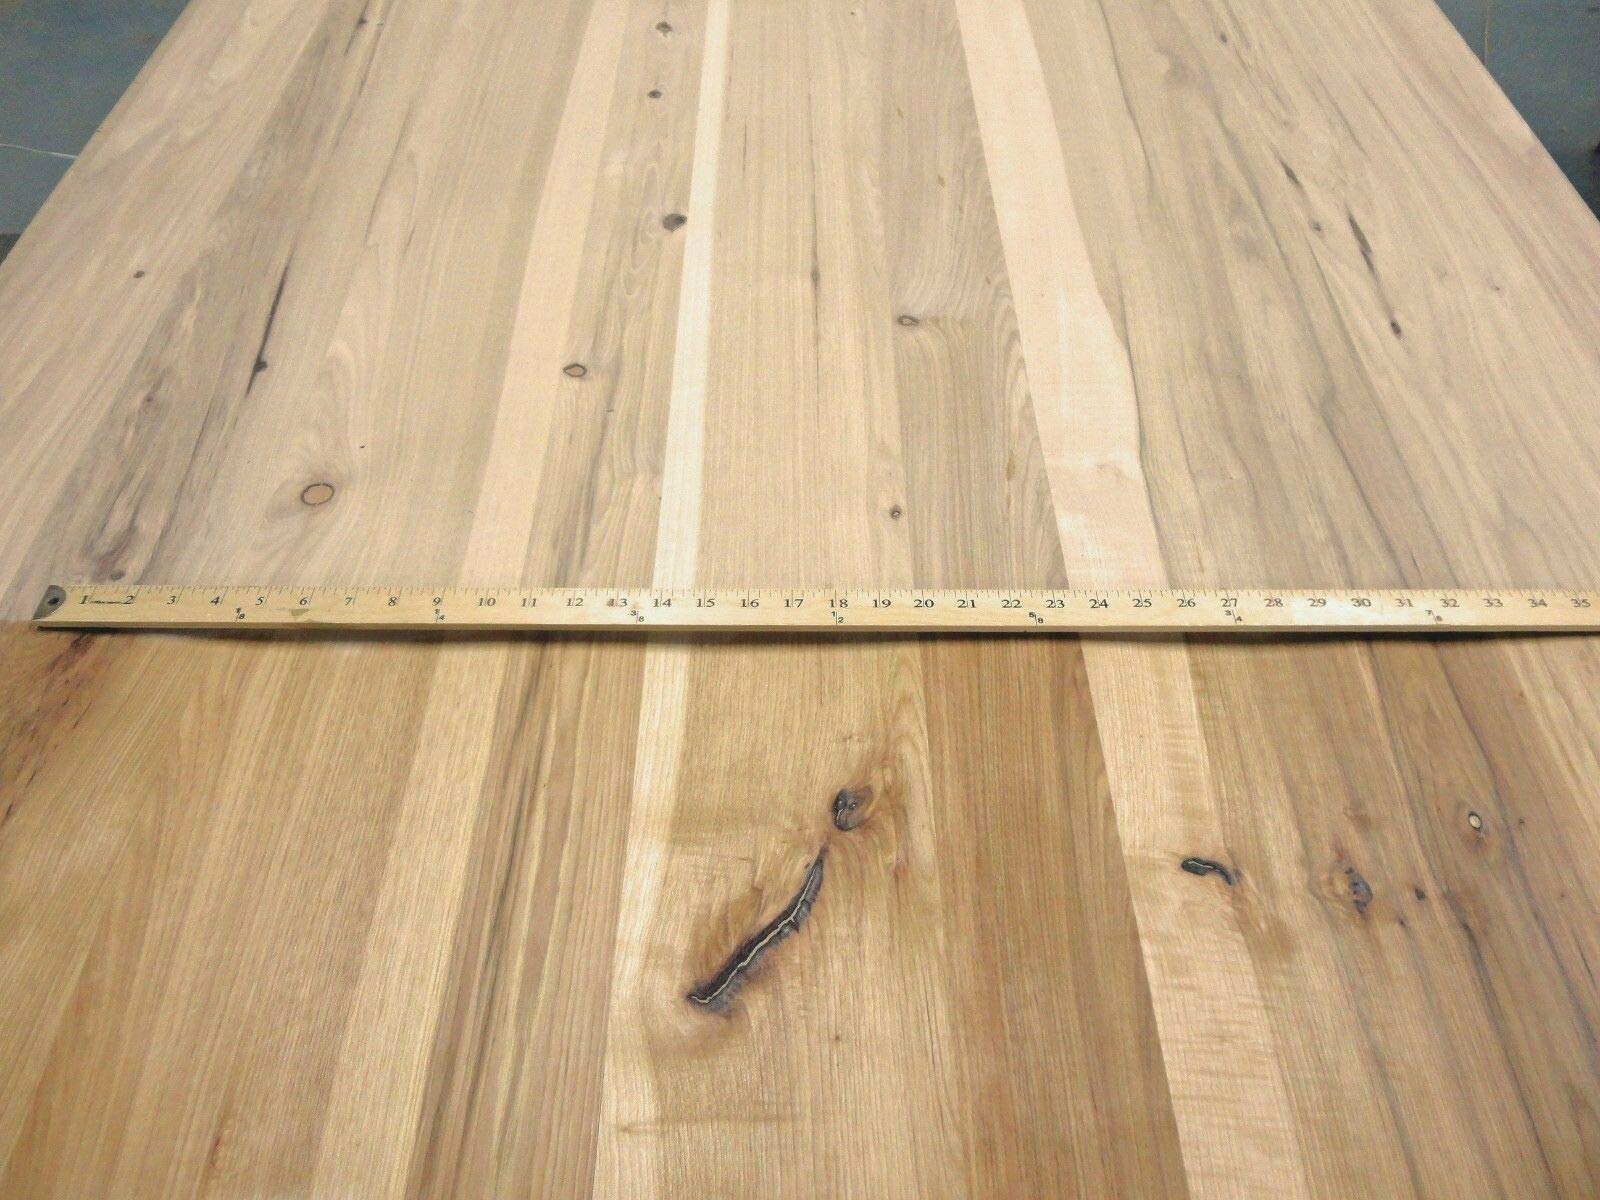 Rustic Planked Knotty Hickory Pecan wood veneer 48'' x 96'' on paper back 1/32'' by JSO Wood Products